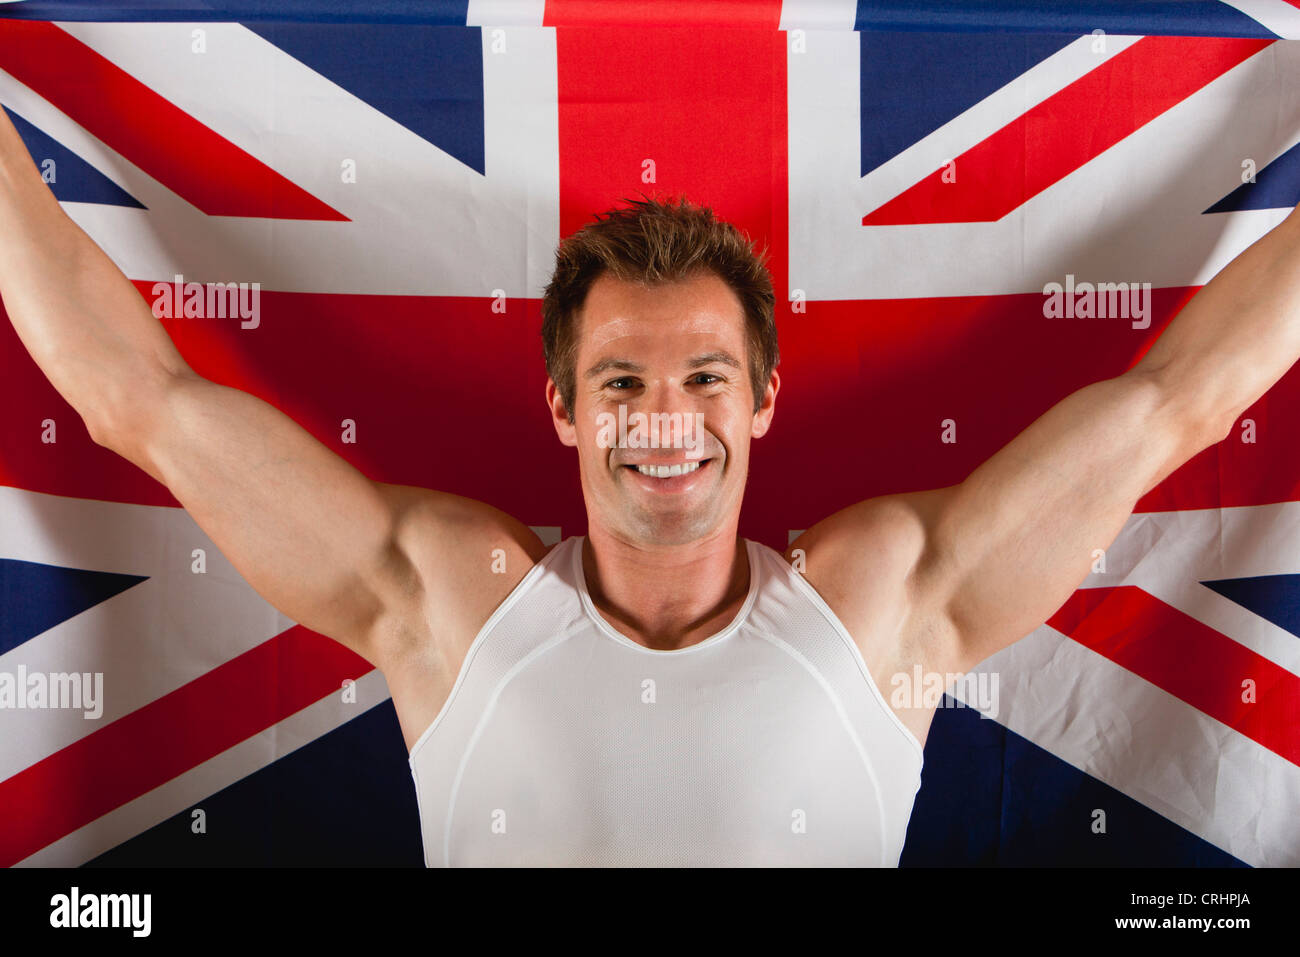 Male athlete in front of British flag - Stock Image